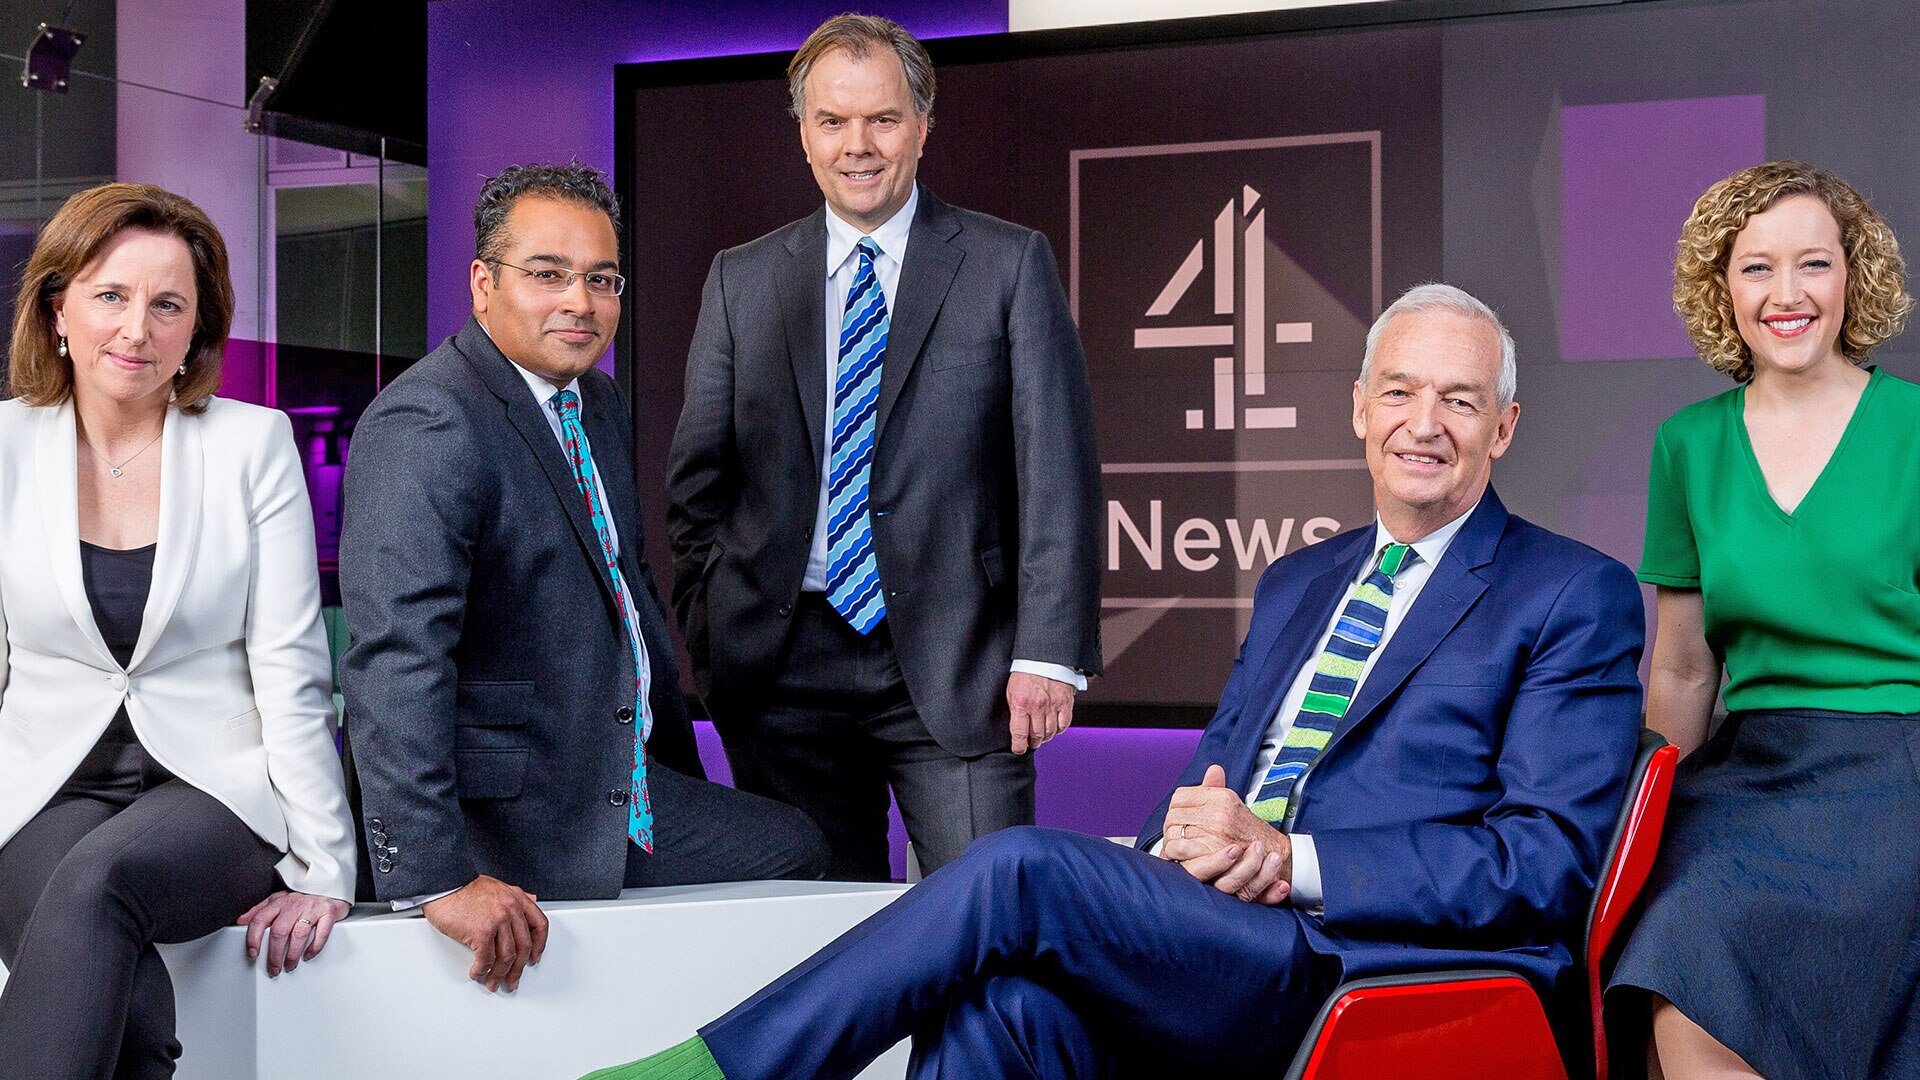 Channel 4 News - Next On Tv: Tue 10 Oct, 7pm